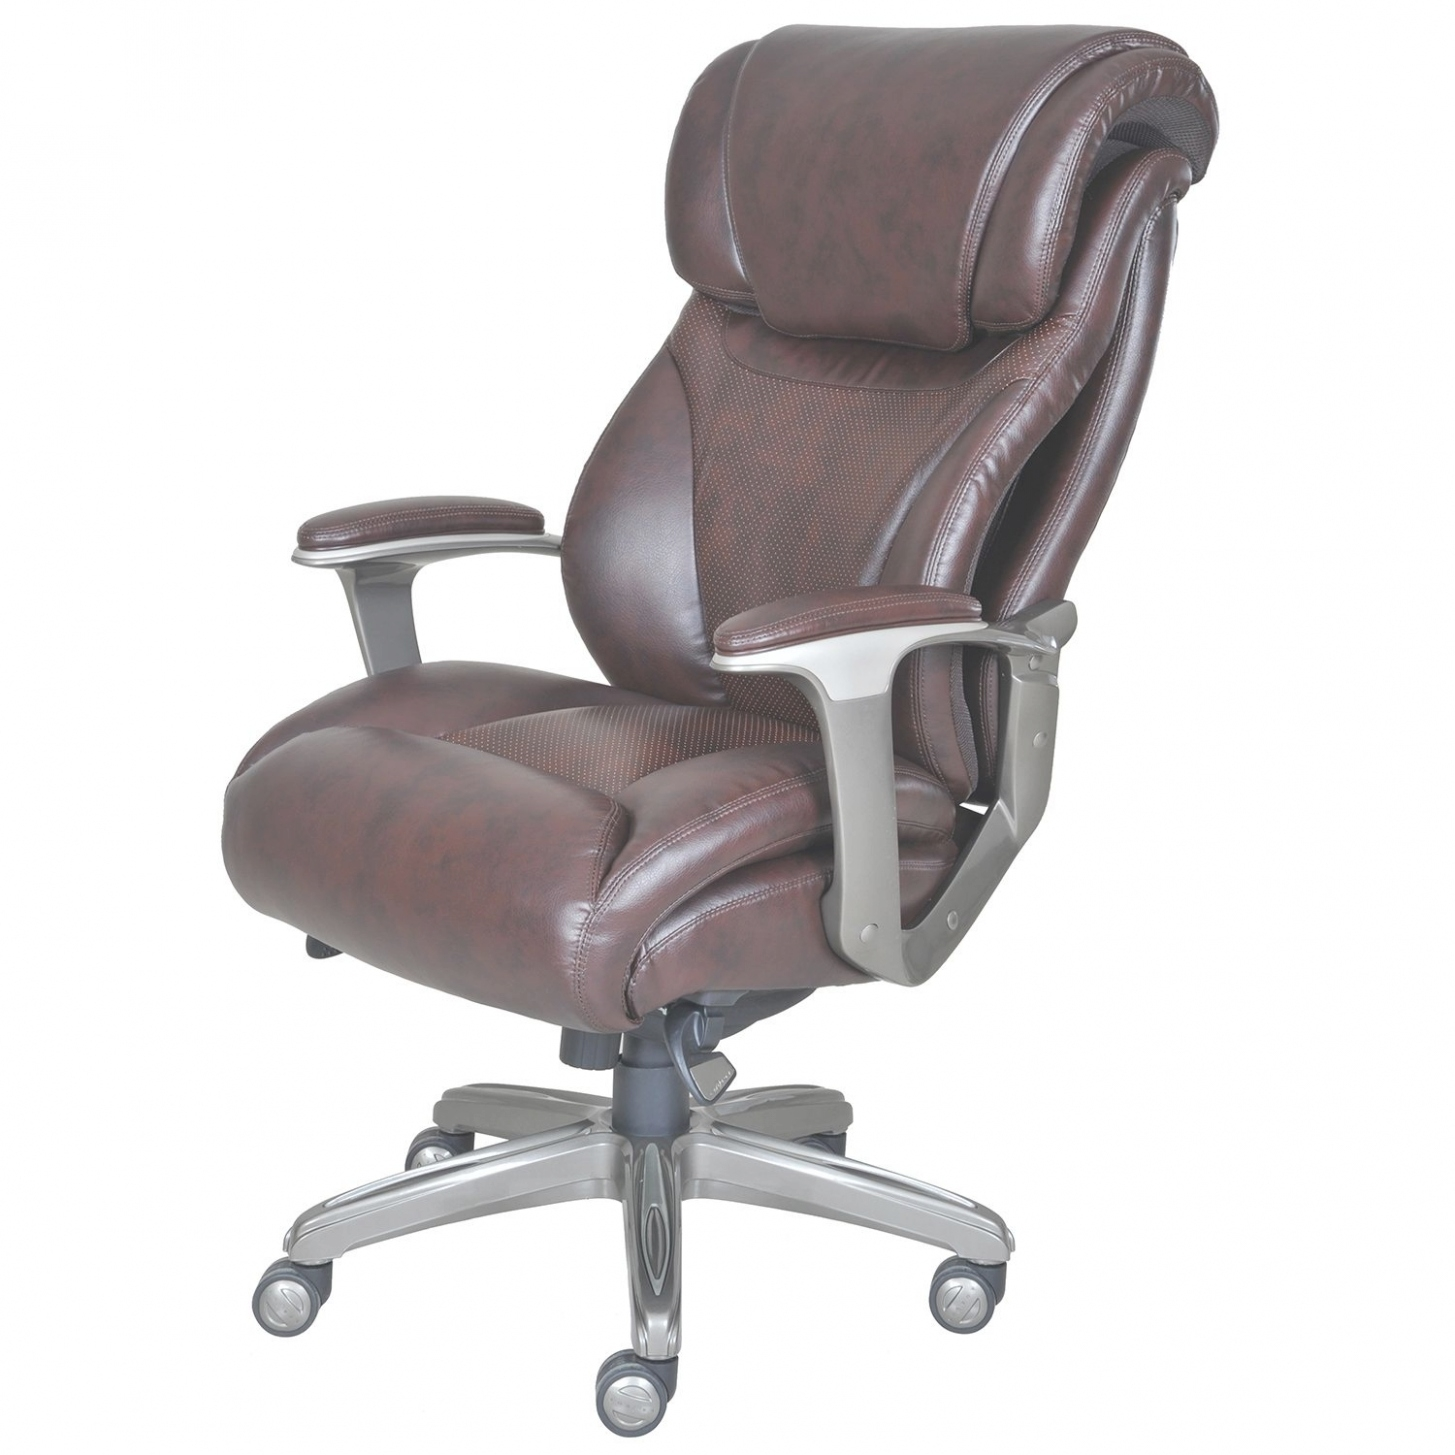 Magnificent Sams Club Office Chair The Best Chair Review Blog Ocoug Best Dining Table And Chair Ideas Images Ocougorg